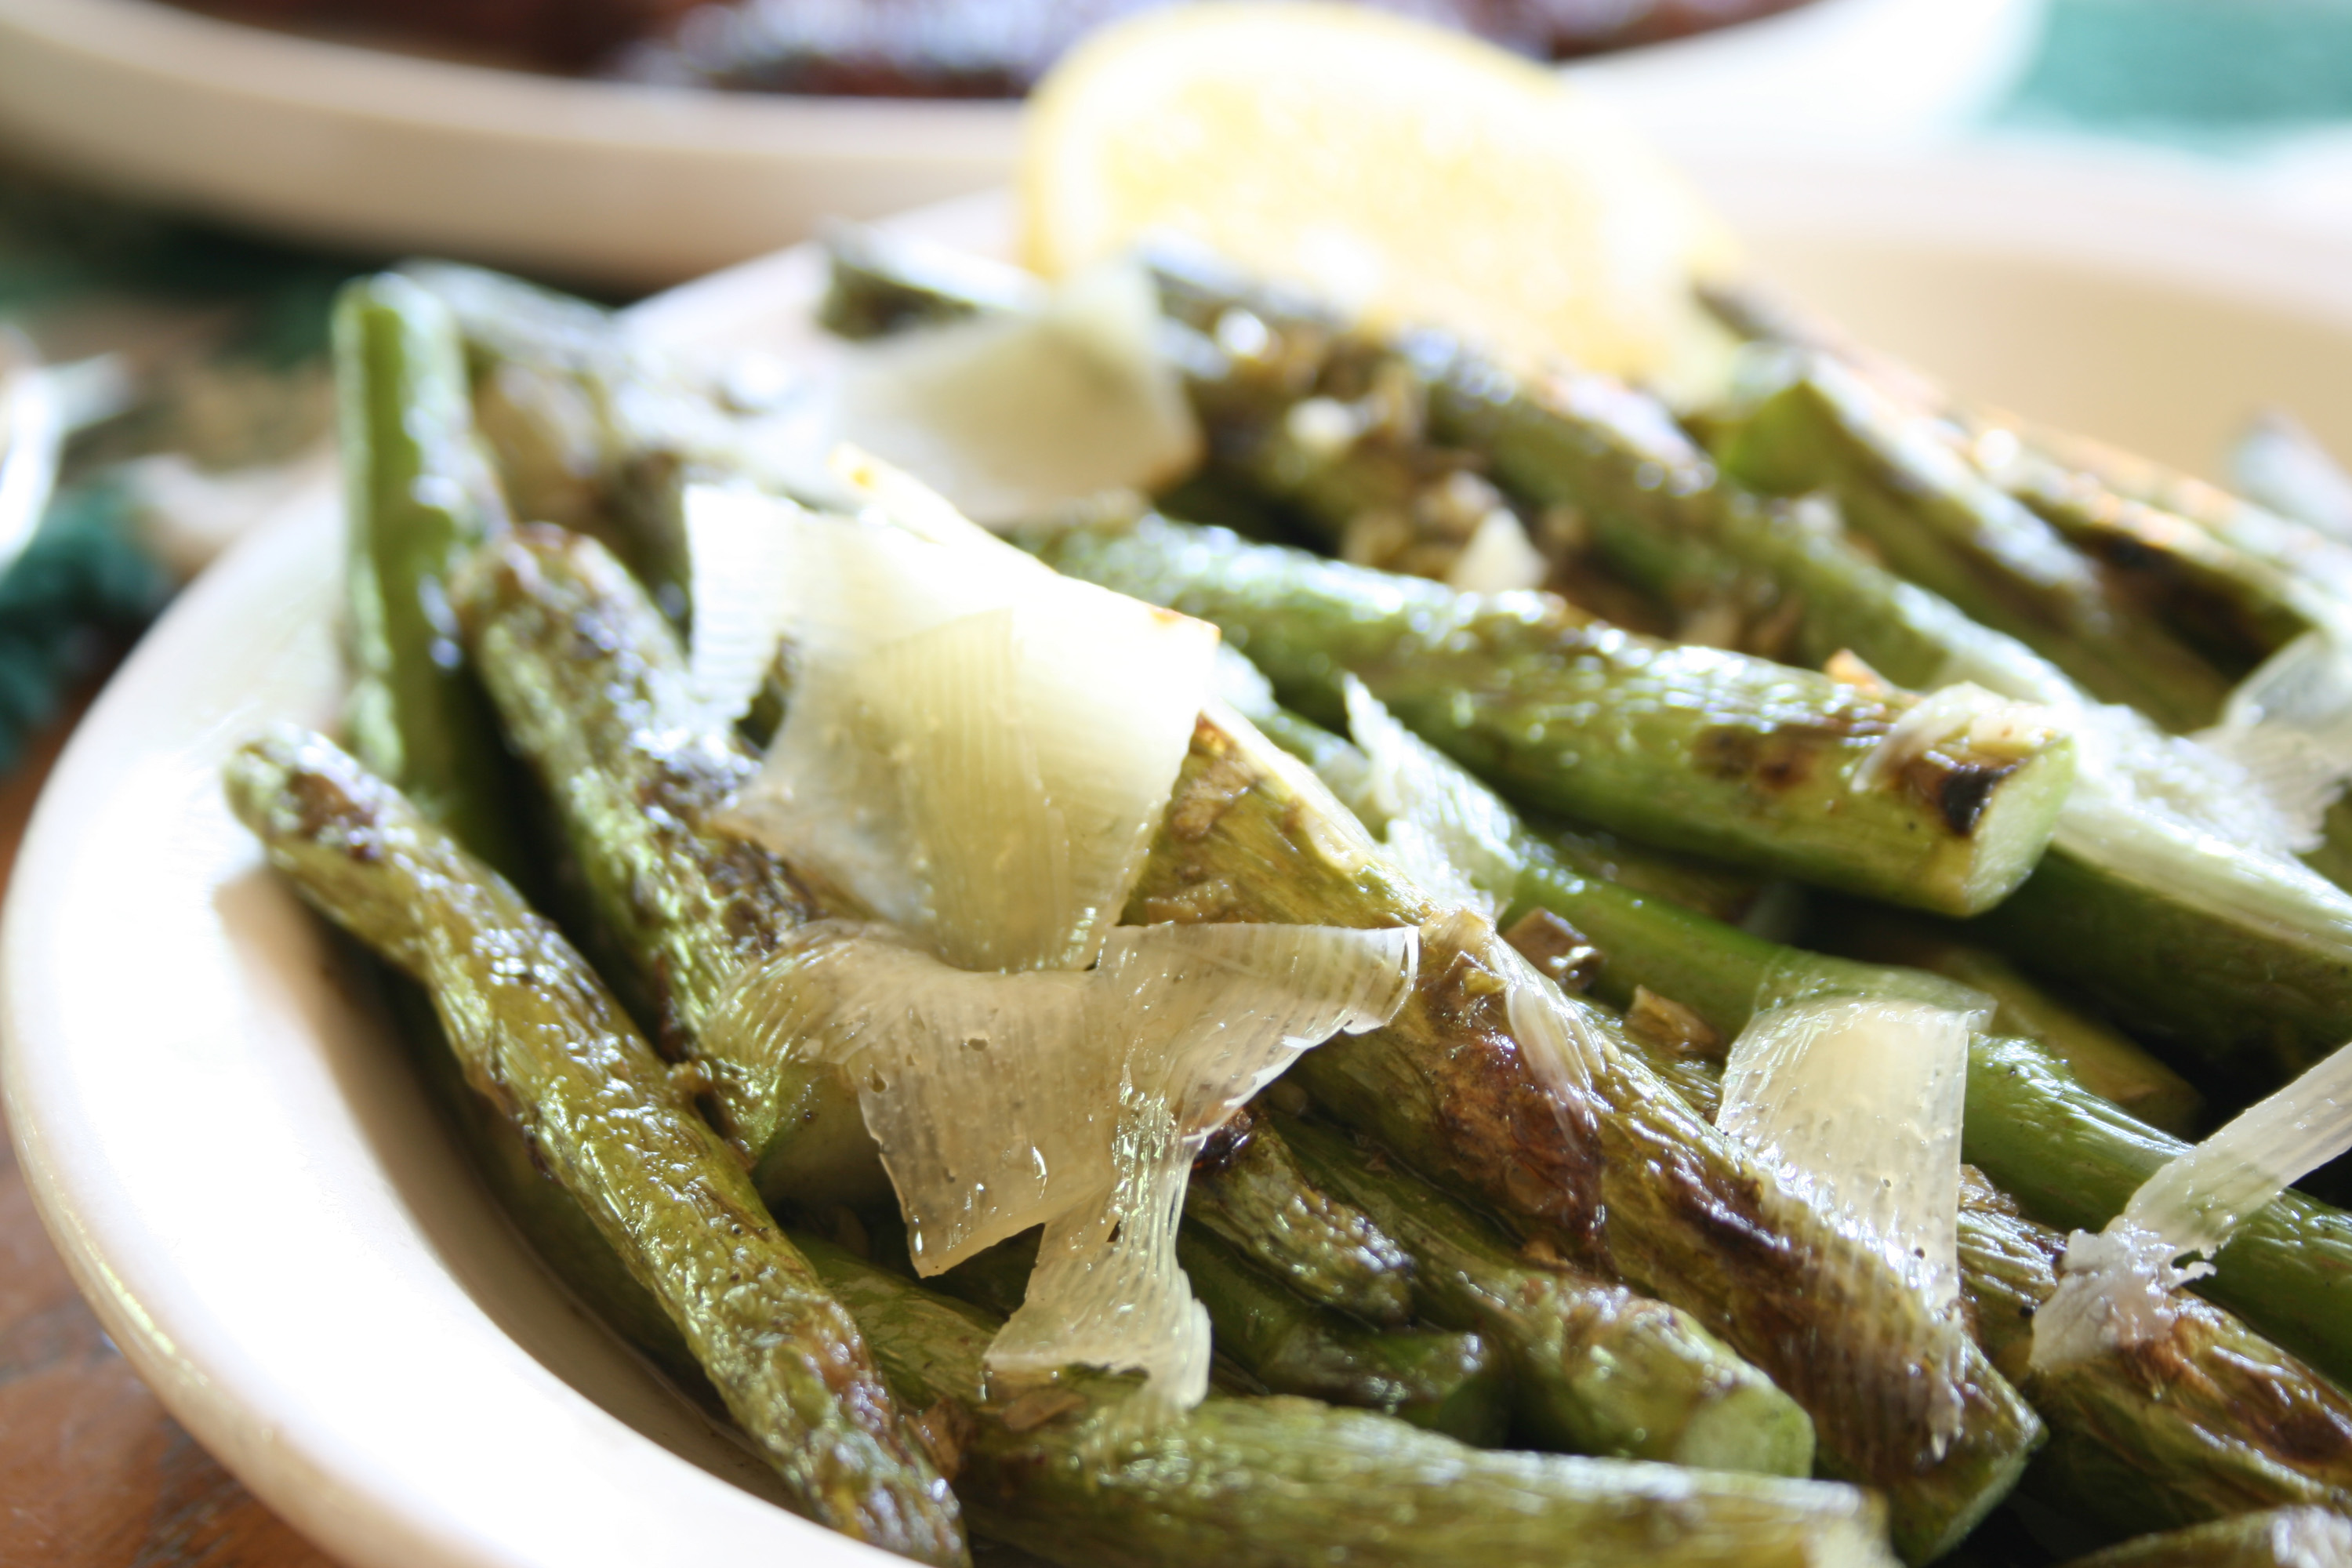 Asparagus with Olive Oil & Herbs